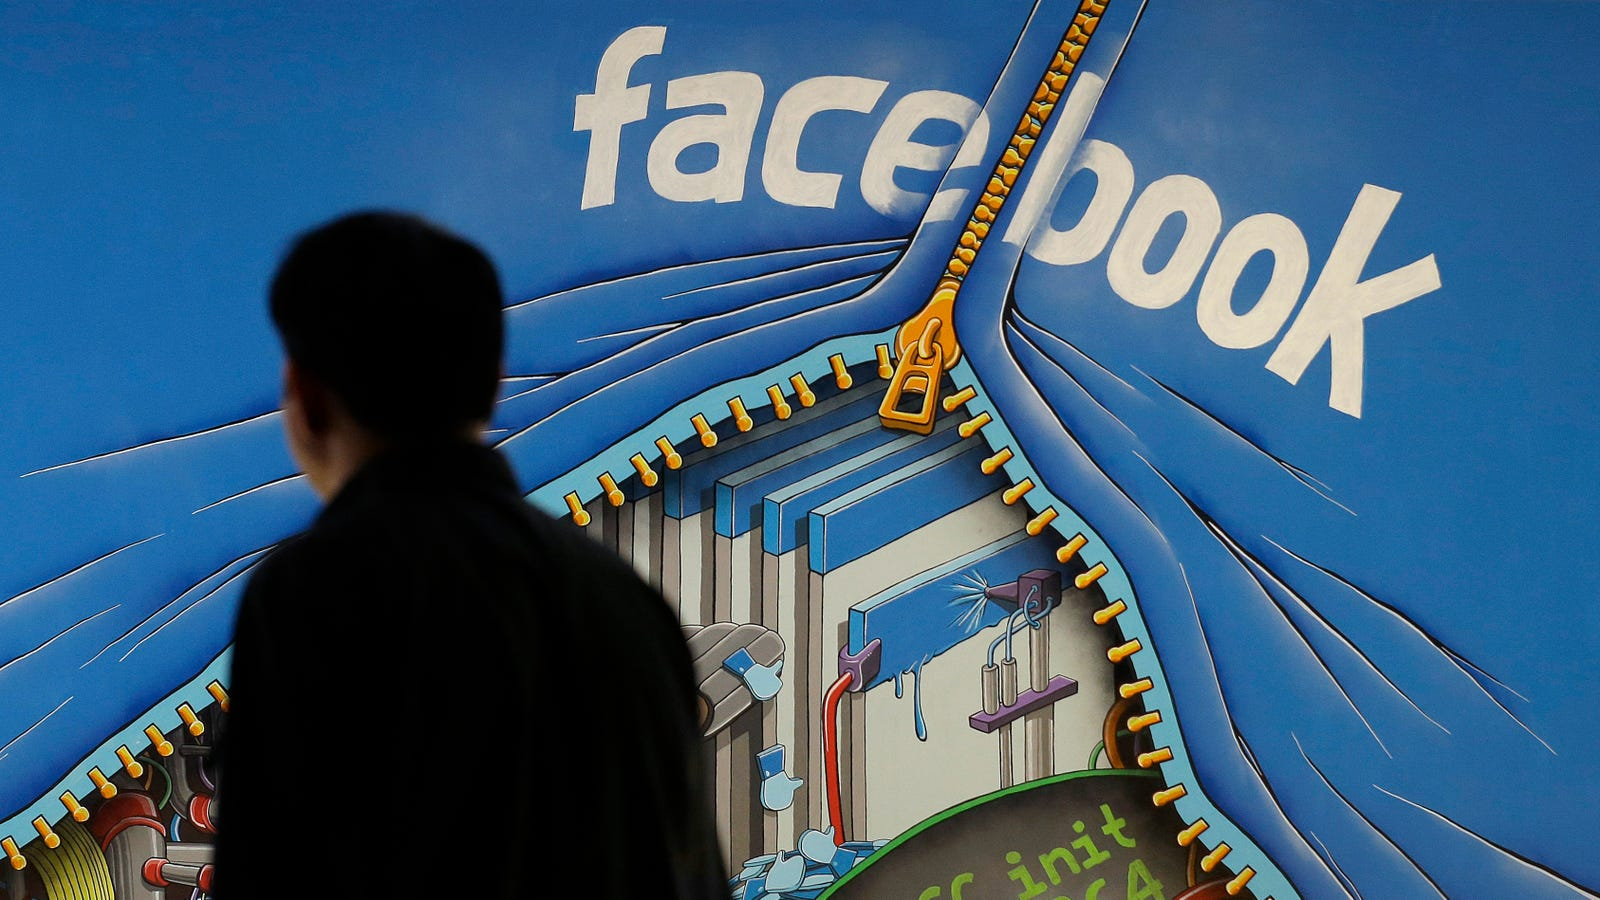 Facebook Shut Down a Conservative 'FB Anon' Group Employees Used for Harassment